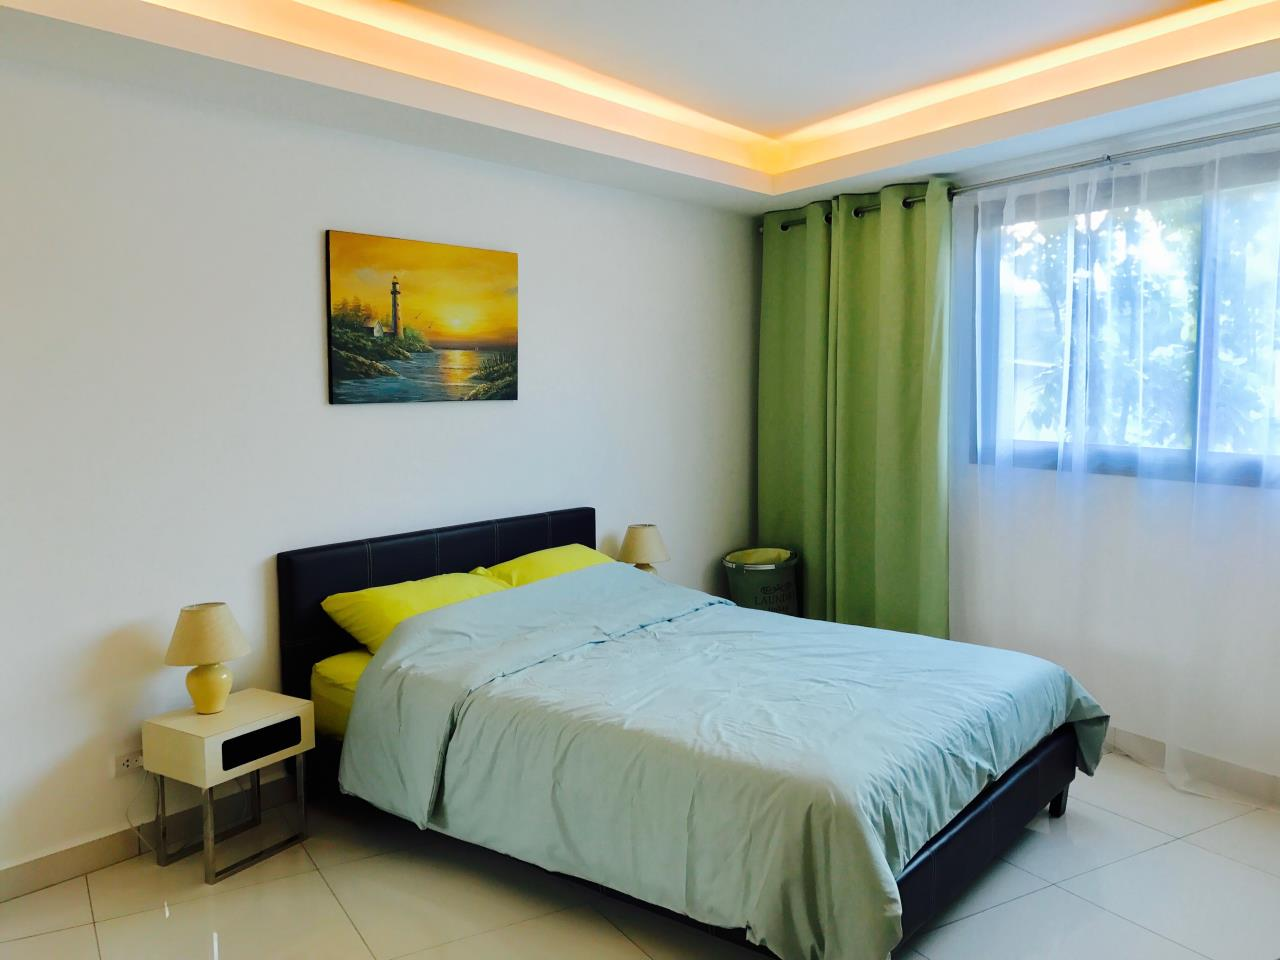 Thai Legacy Property Agency's Laguna Beach Resort 2. 1 bedroom for rent 2